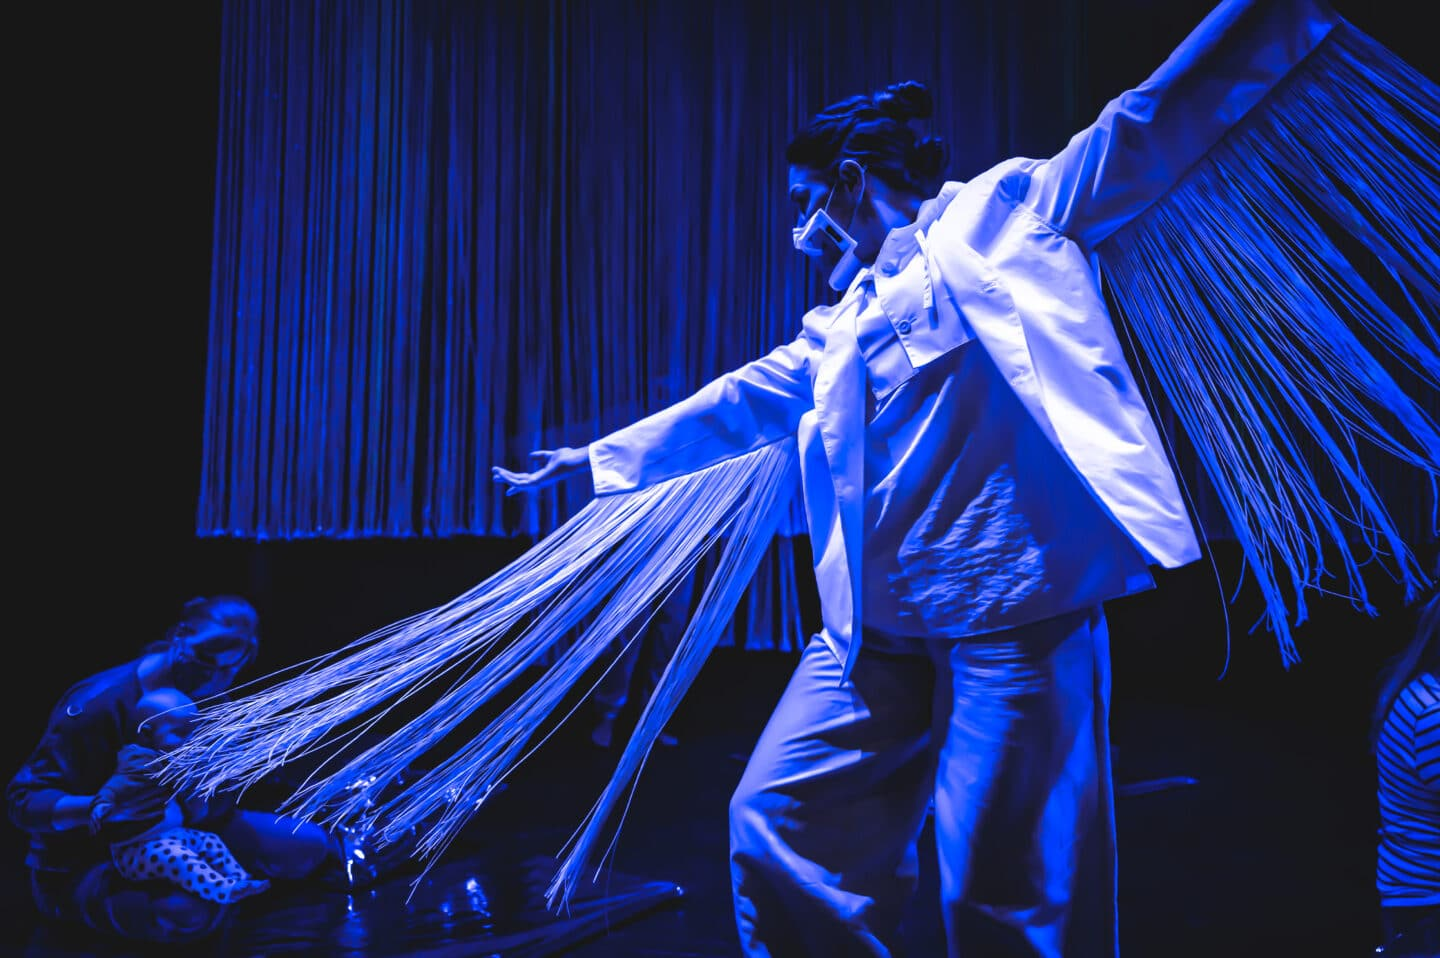 a dancer in white on a stage flooded with blue. she has long fringes hanging from each arm and she is spinning. behind the fringes we see a baby and mother watching her